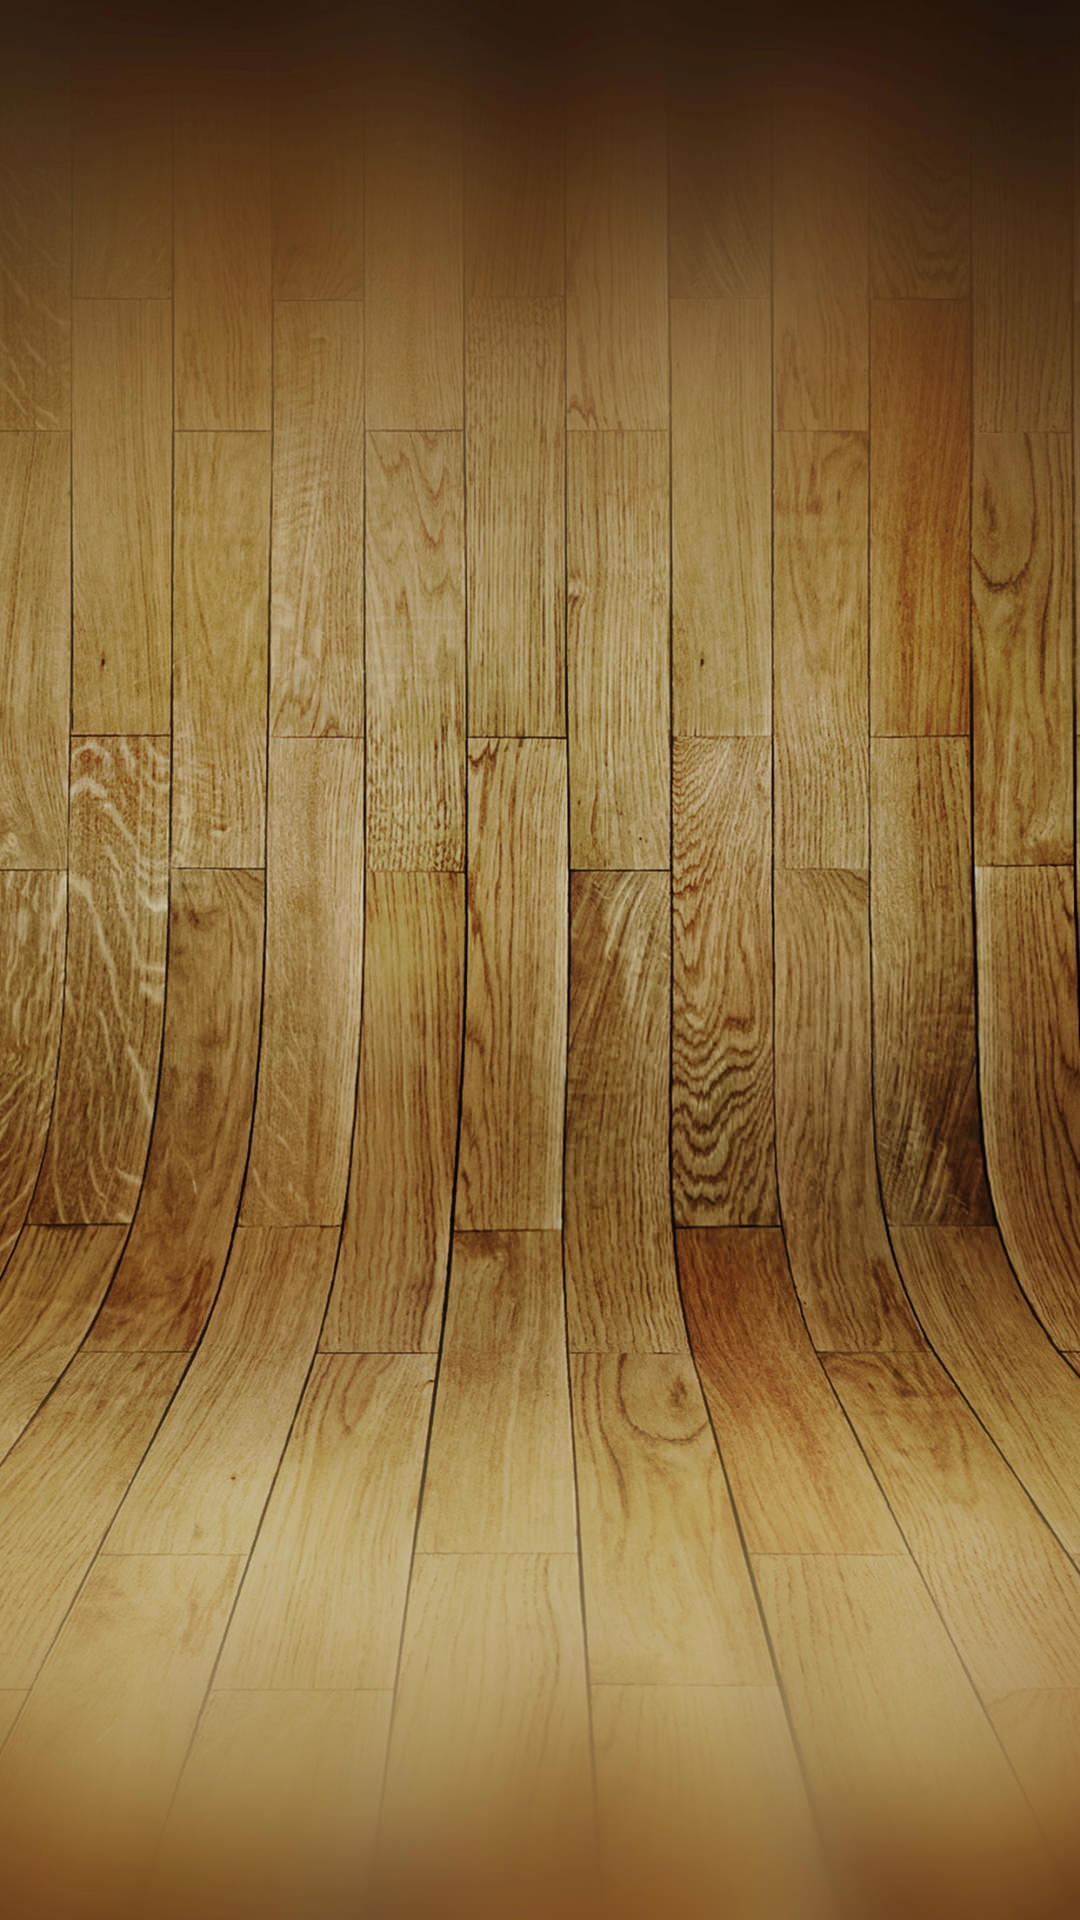 curved wooden floor pattern iphone 6 hd wallpaper